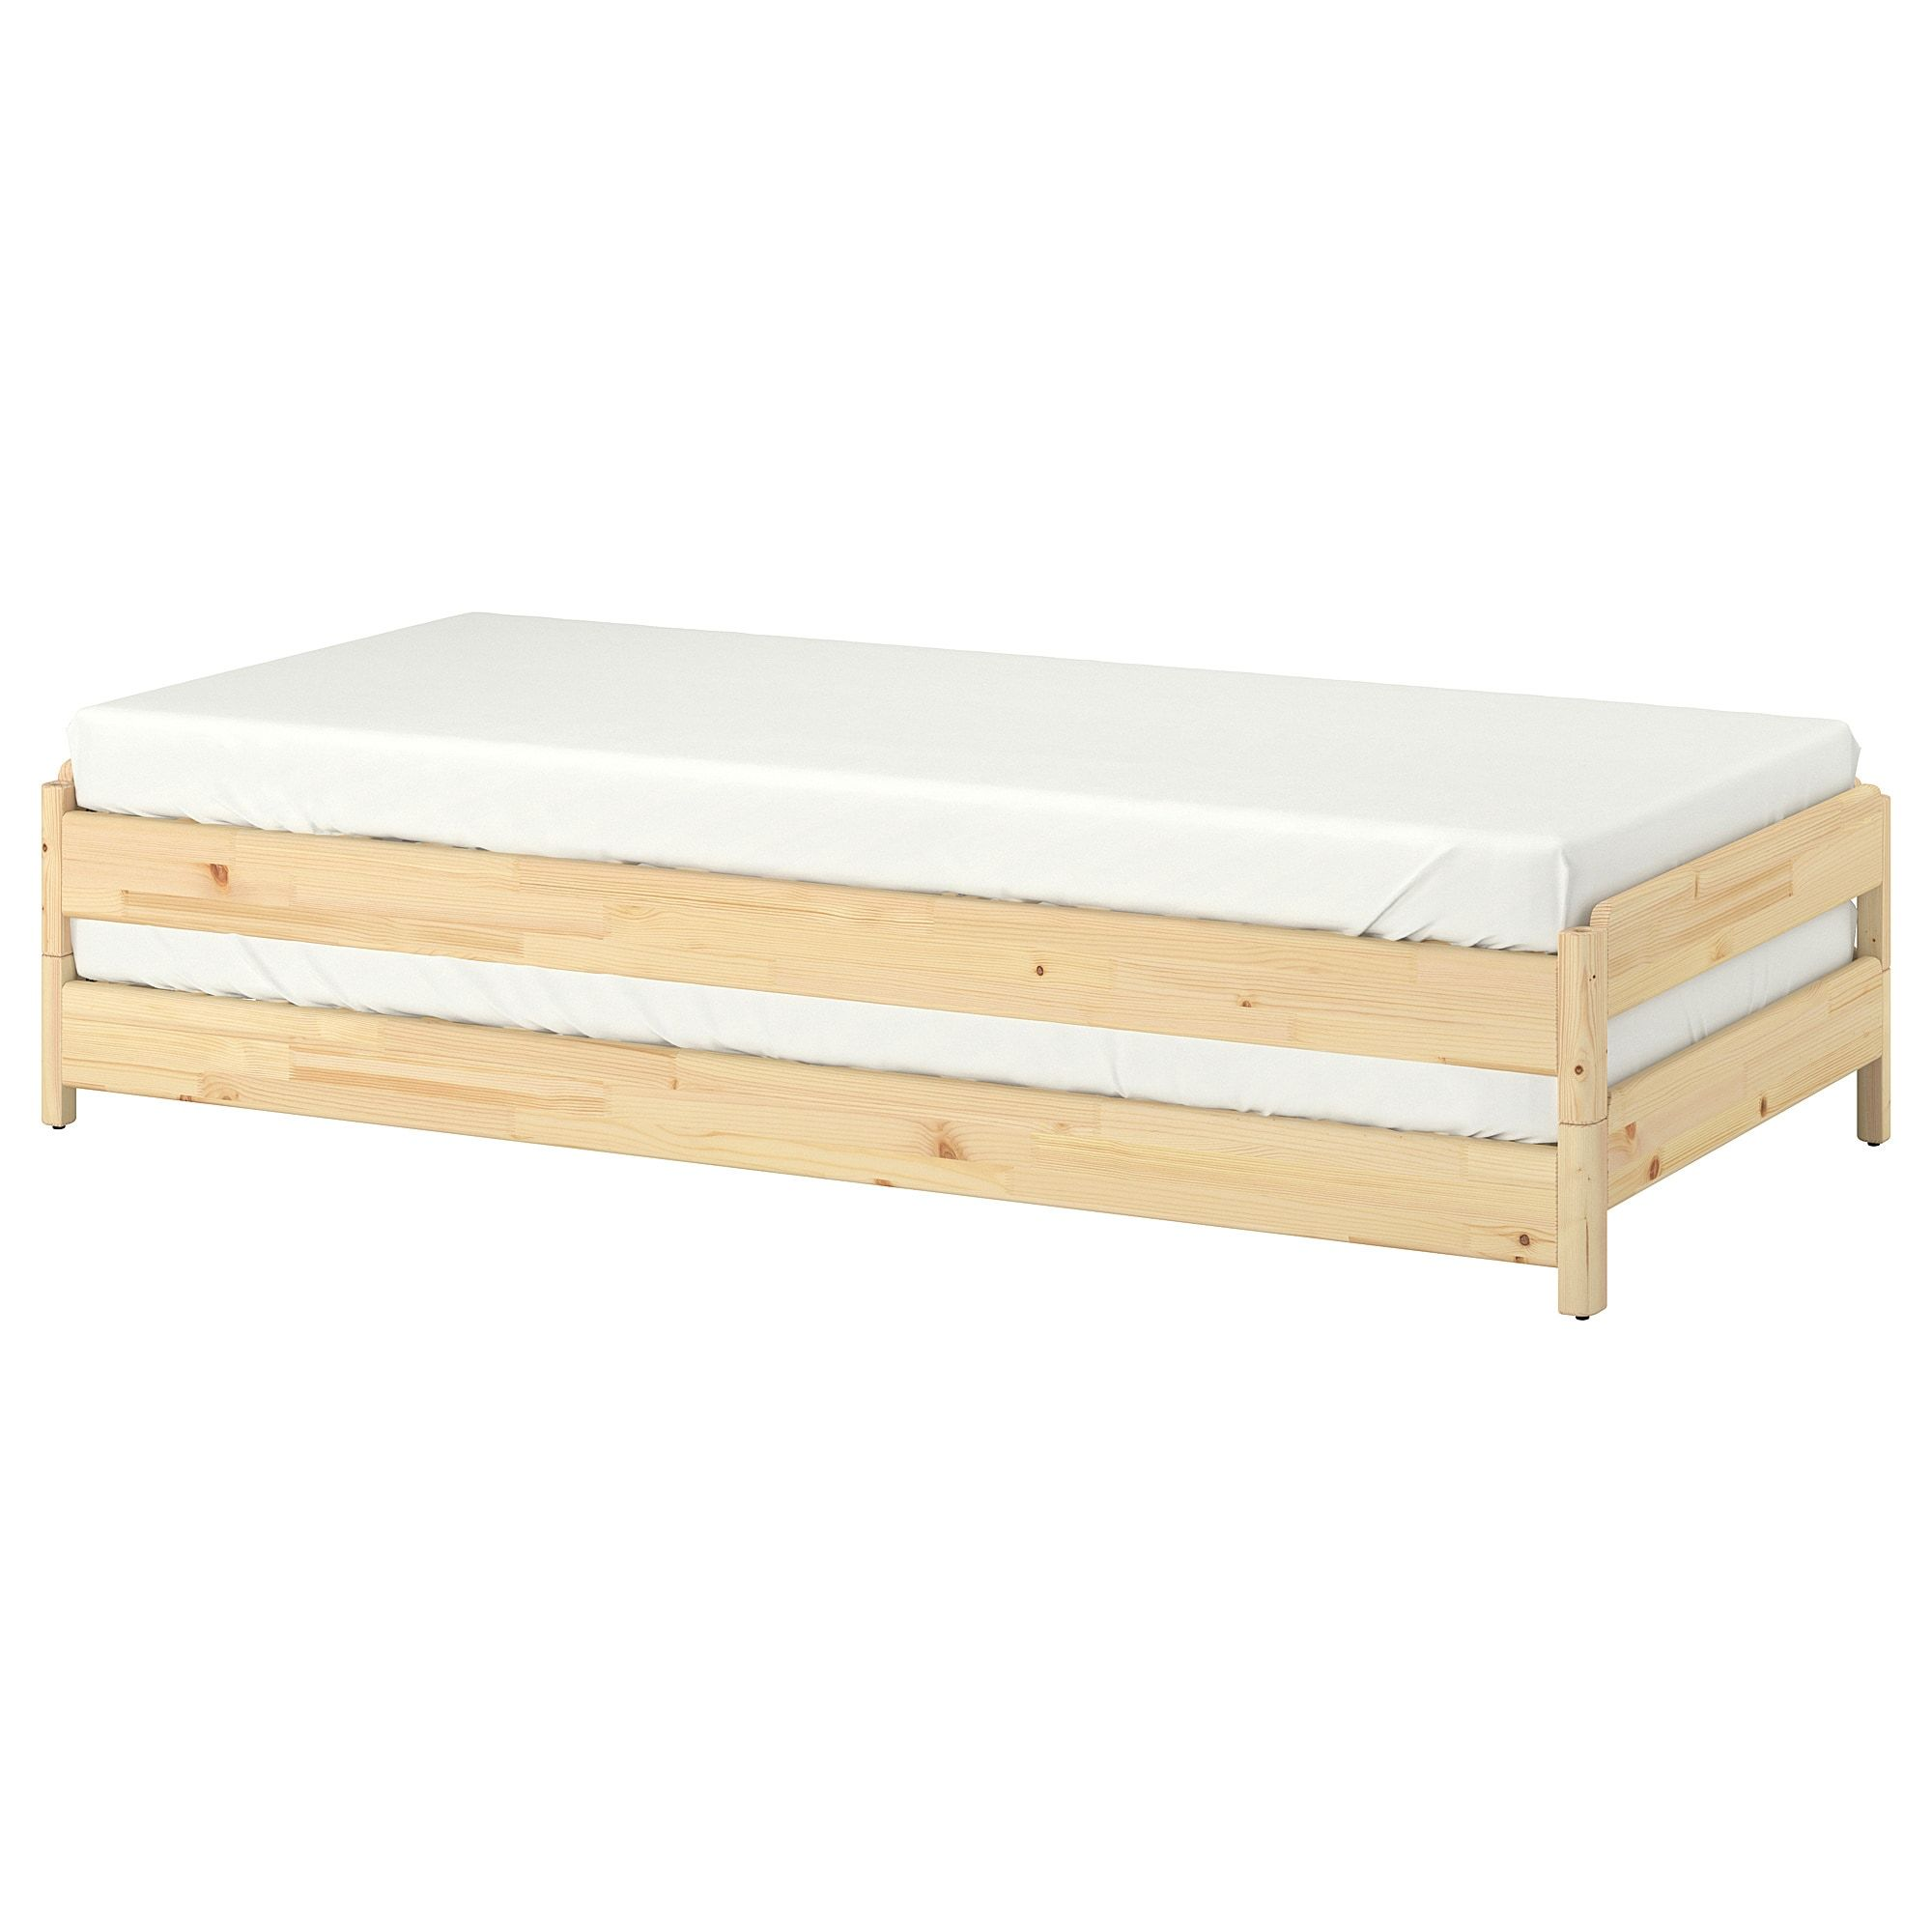 Ikea Utaker Pine Minnesund Stackable Bed With 2 Mattresses In 2020 Ikea Ikea Bed Mattress